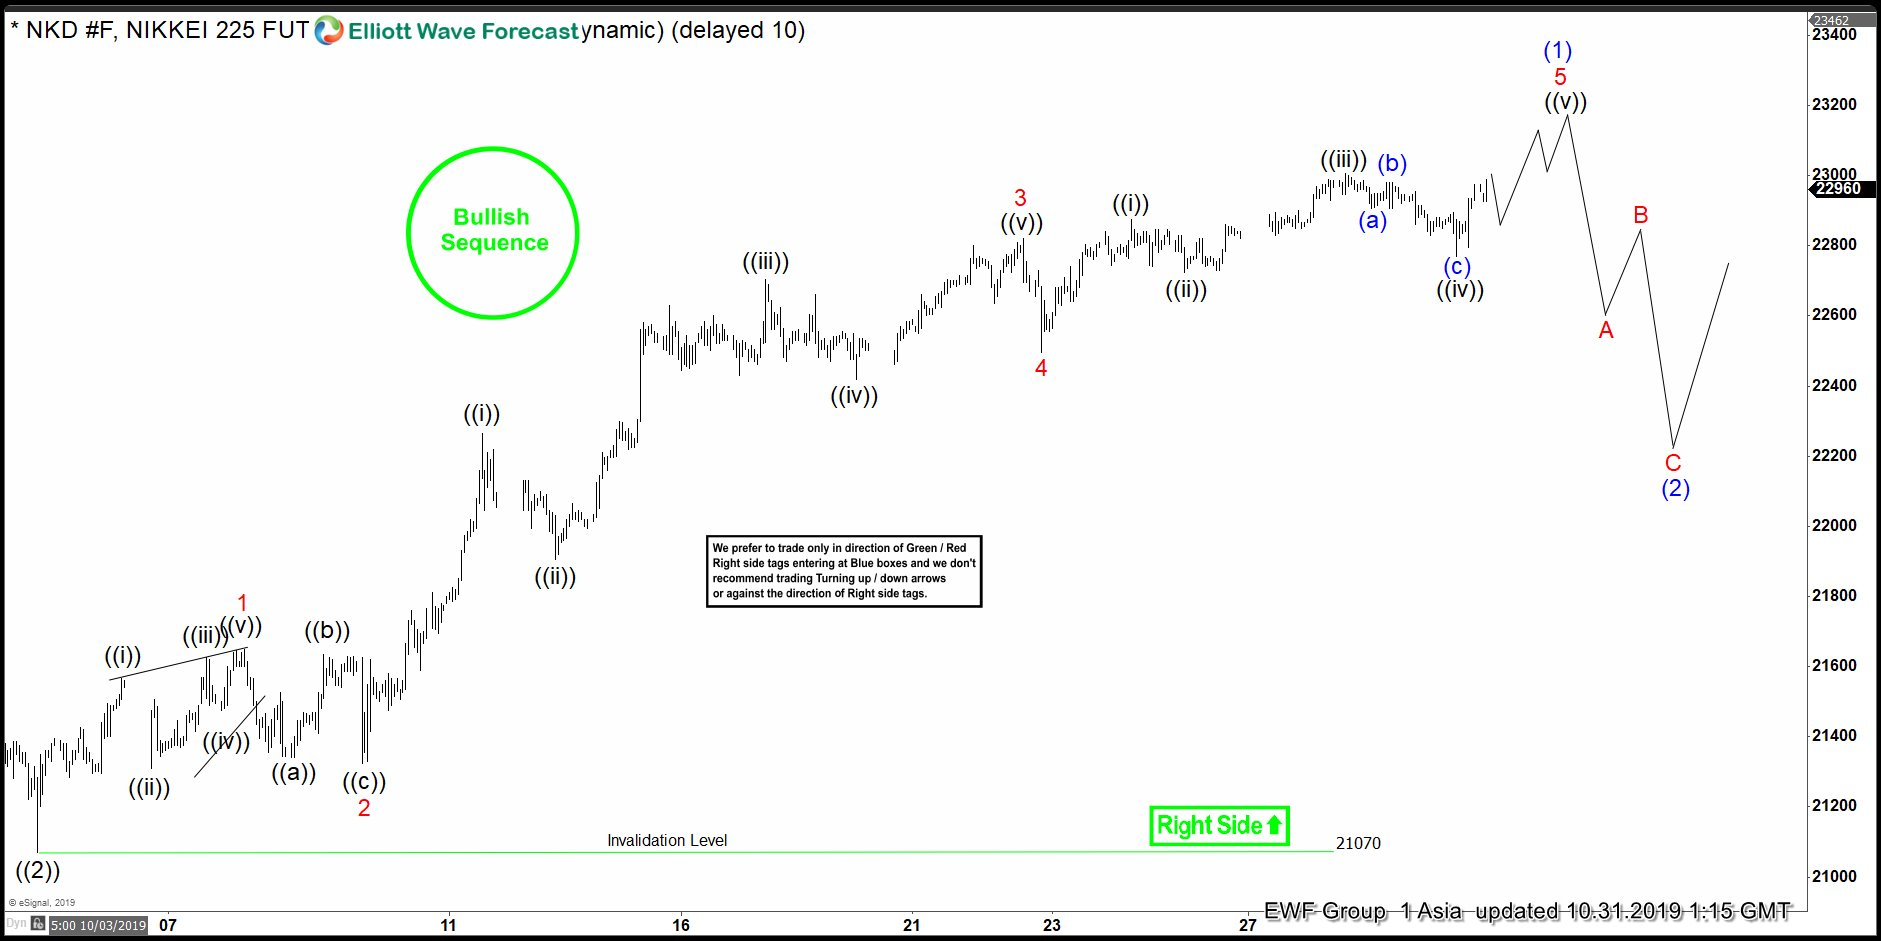 Elliott Wave View: Nikkei Incomplete Bullish Sequence Favors More Upside